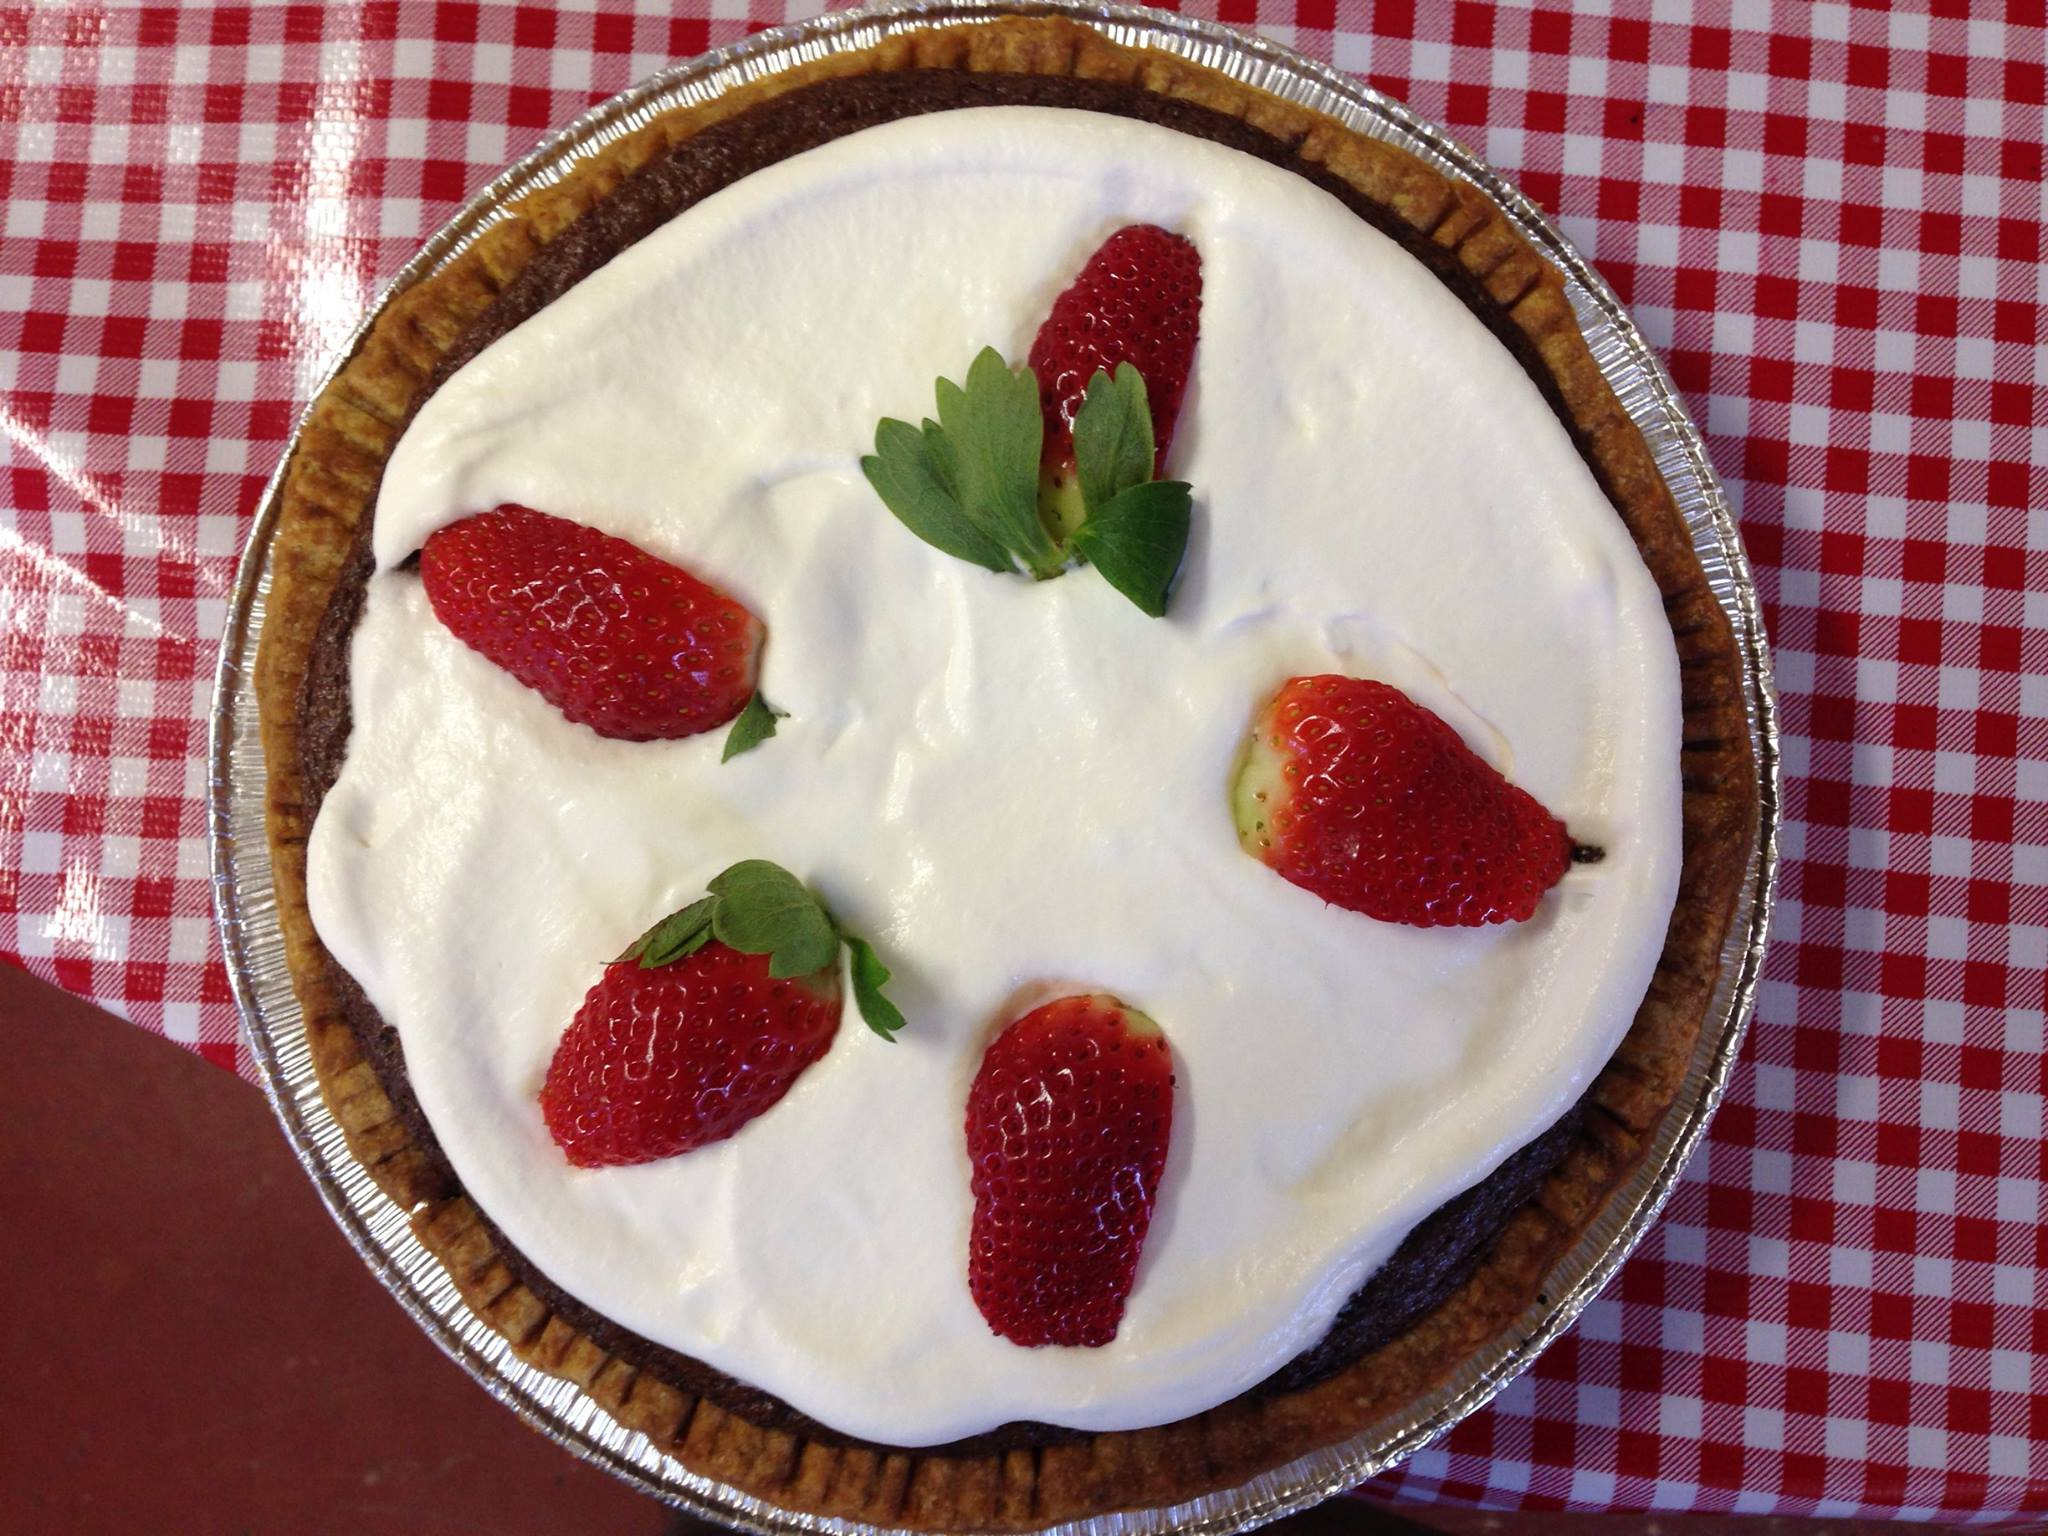 Featuring pie from  Woodruff's Cafe and Pie Shop inMonroe, Va.